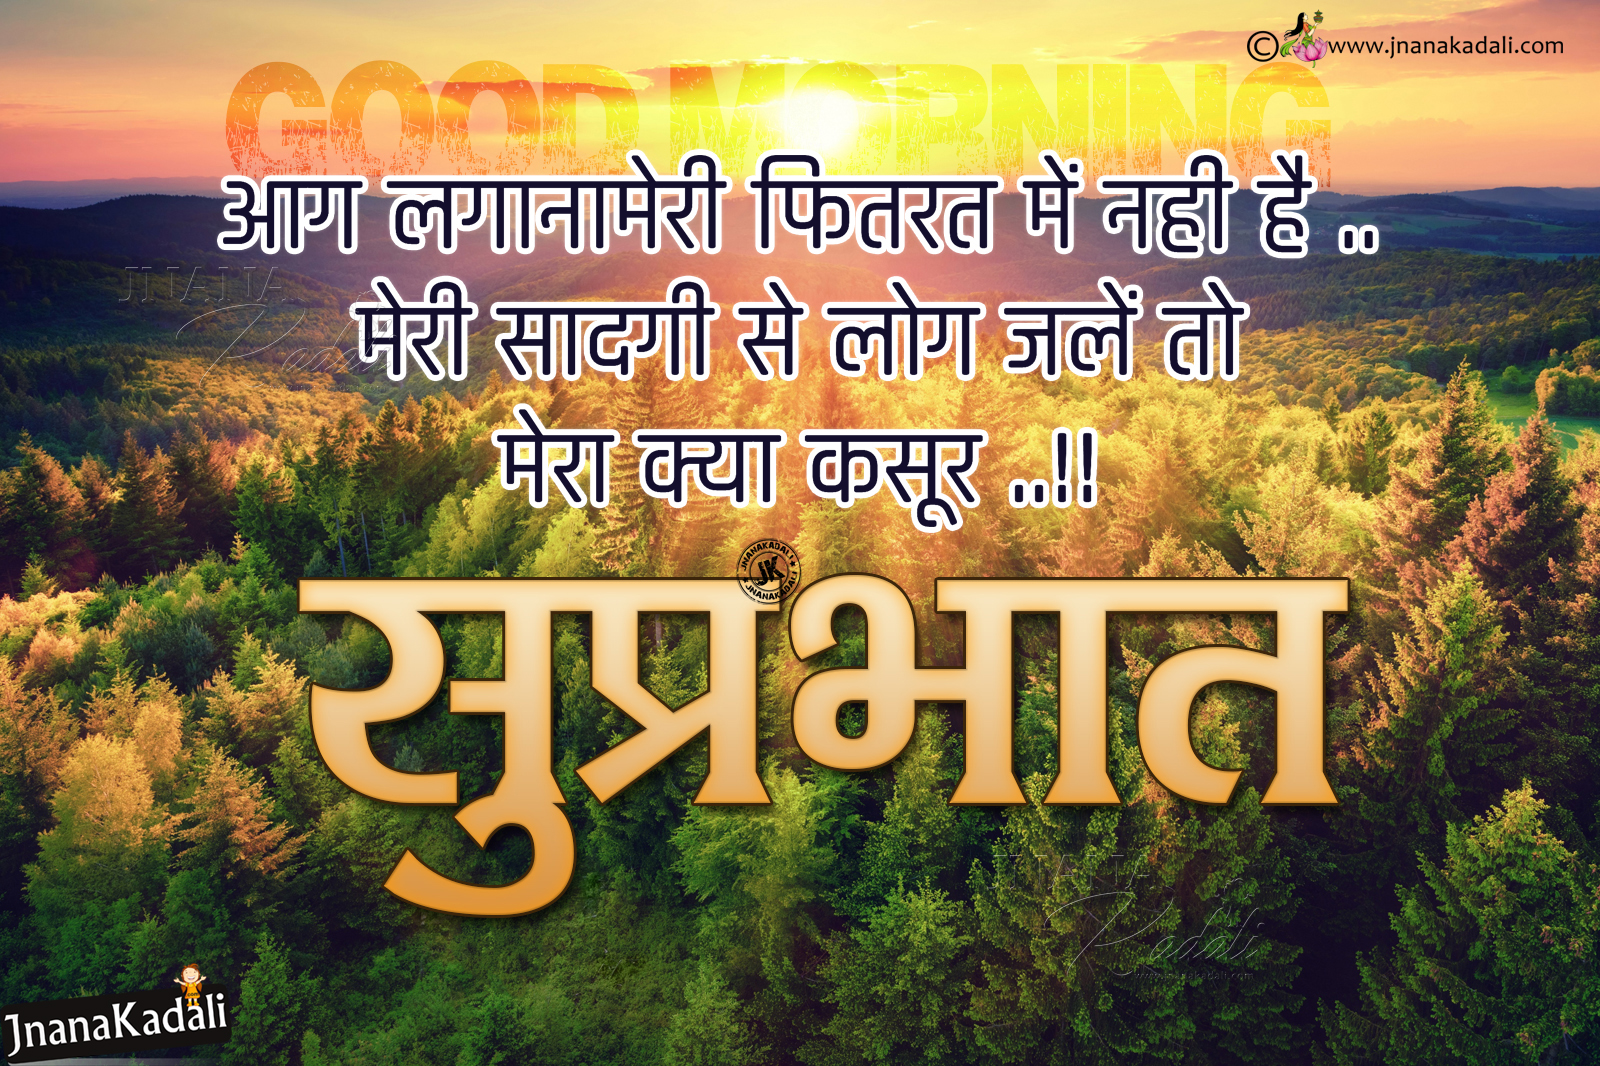 Motivational Good Morning Hindi Greetings Suprabaatha Shayari In